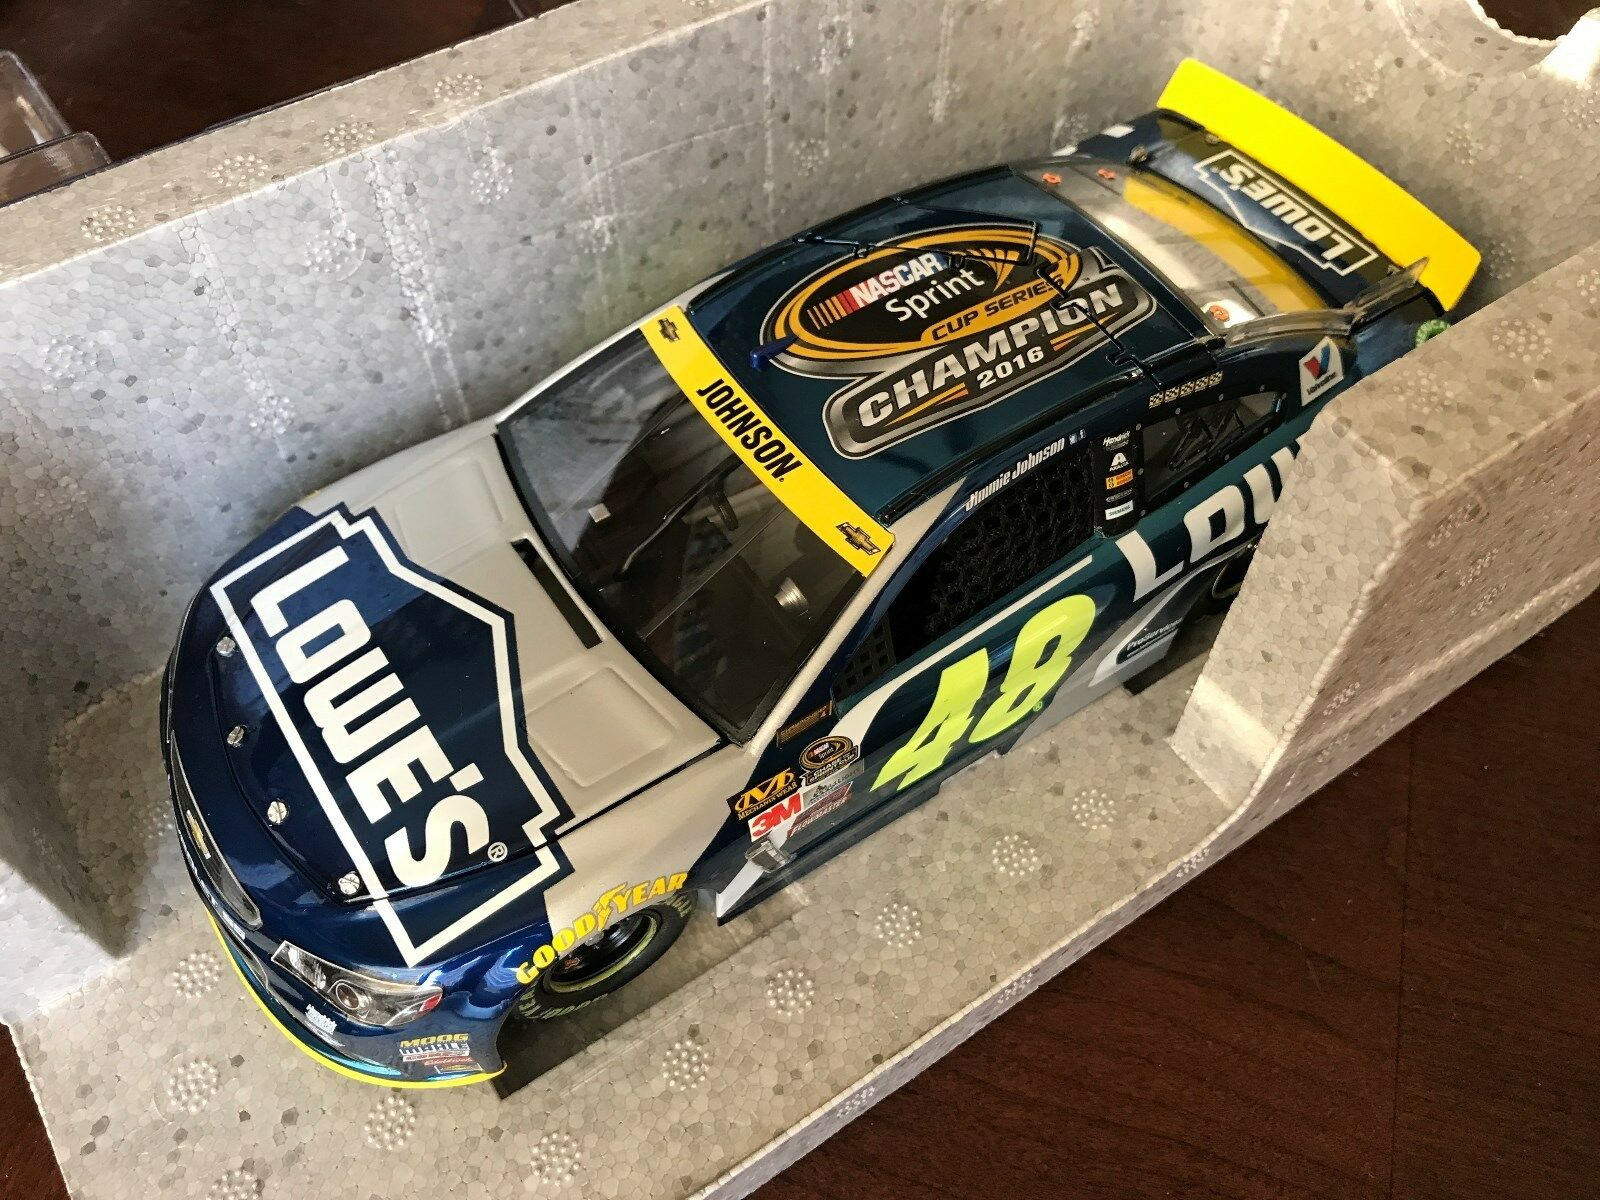 2016 Jimmie Johnson Lowes 7x Cup Champion Champ Farbe Chrome ELITE car 1 of 113